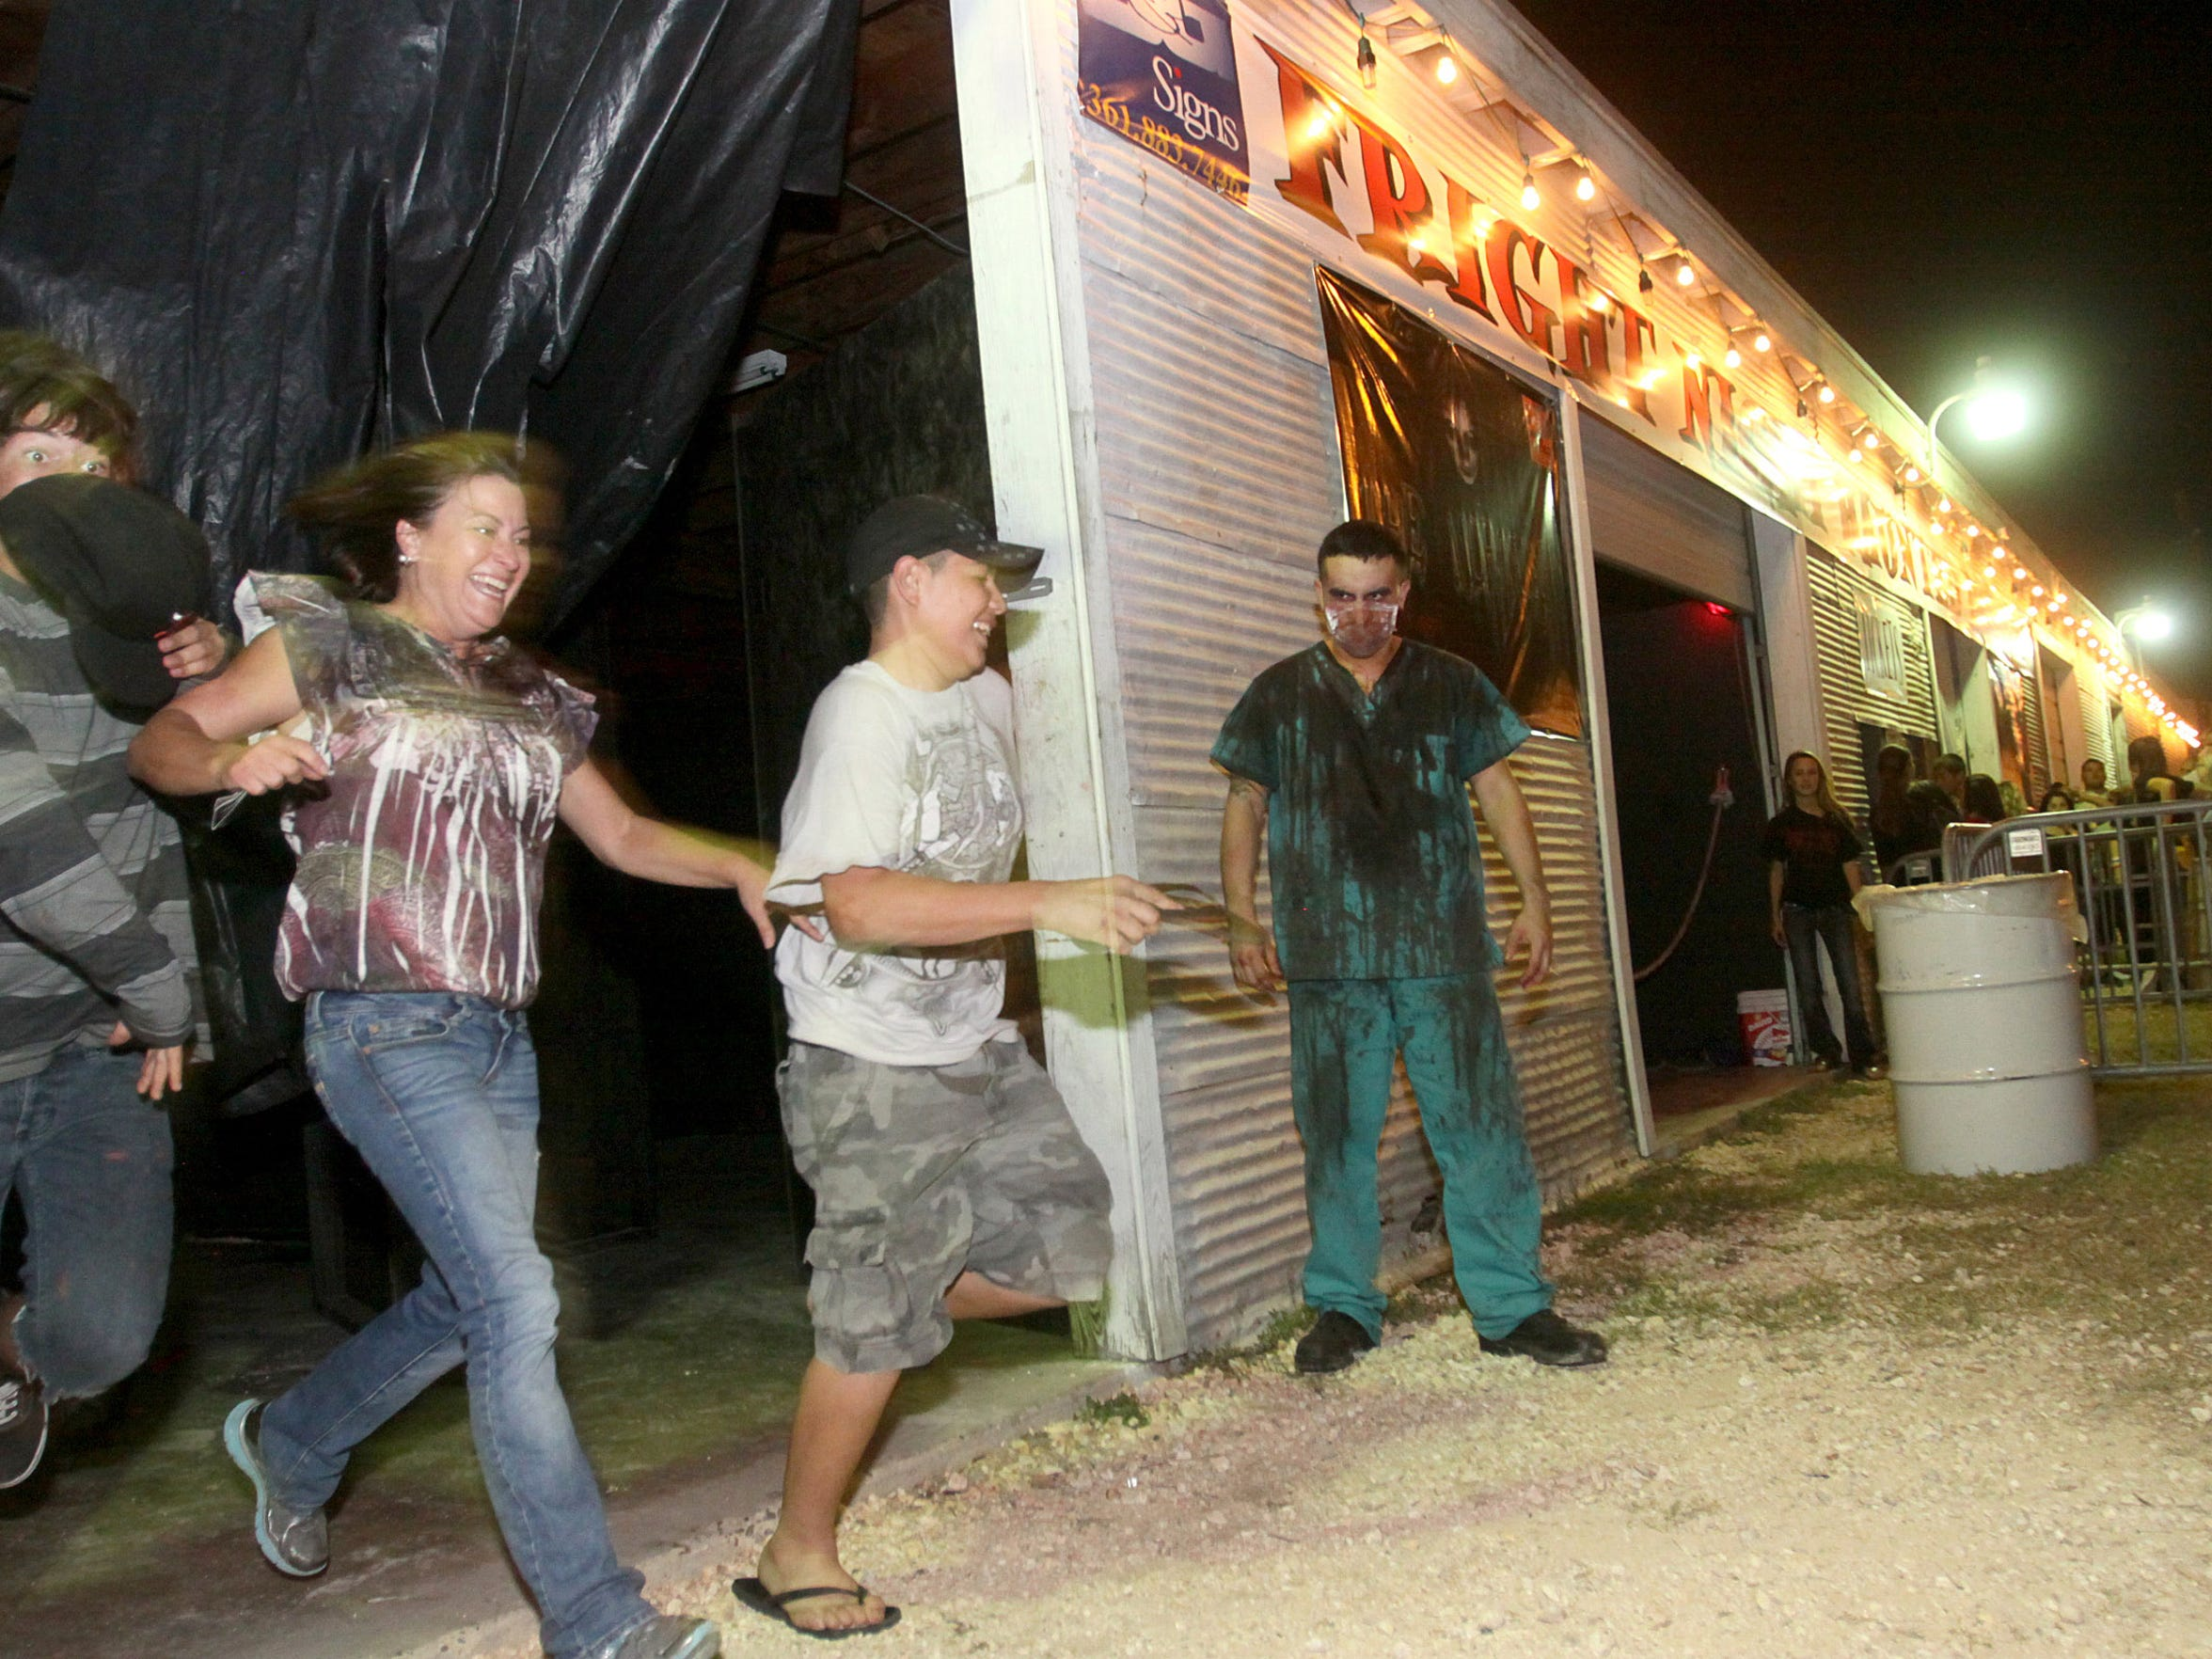 The Fright Night Haunted House will offers scares at